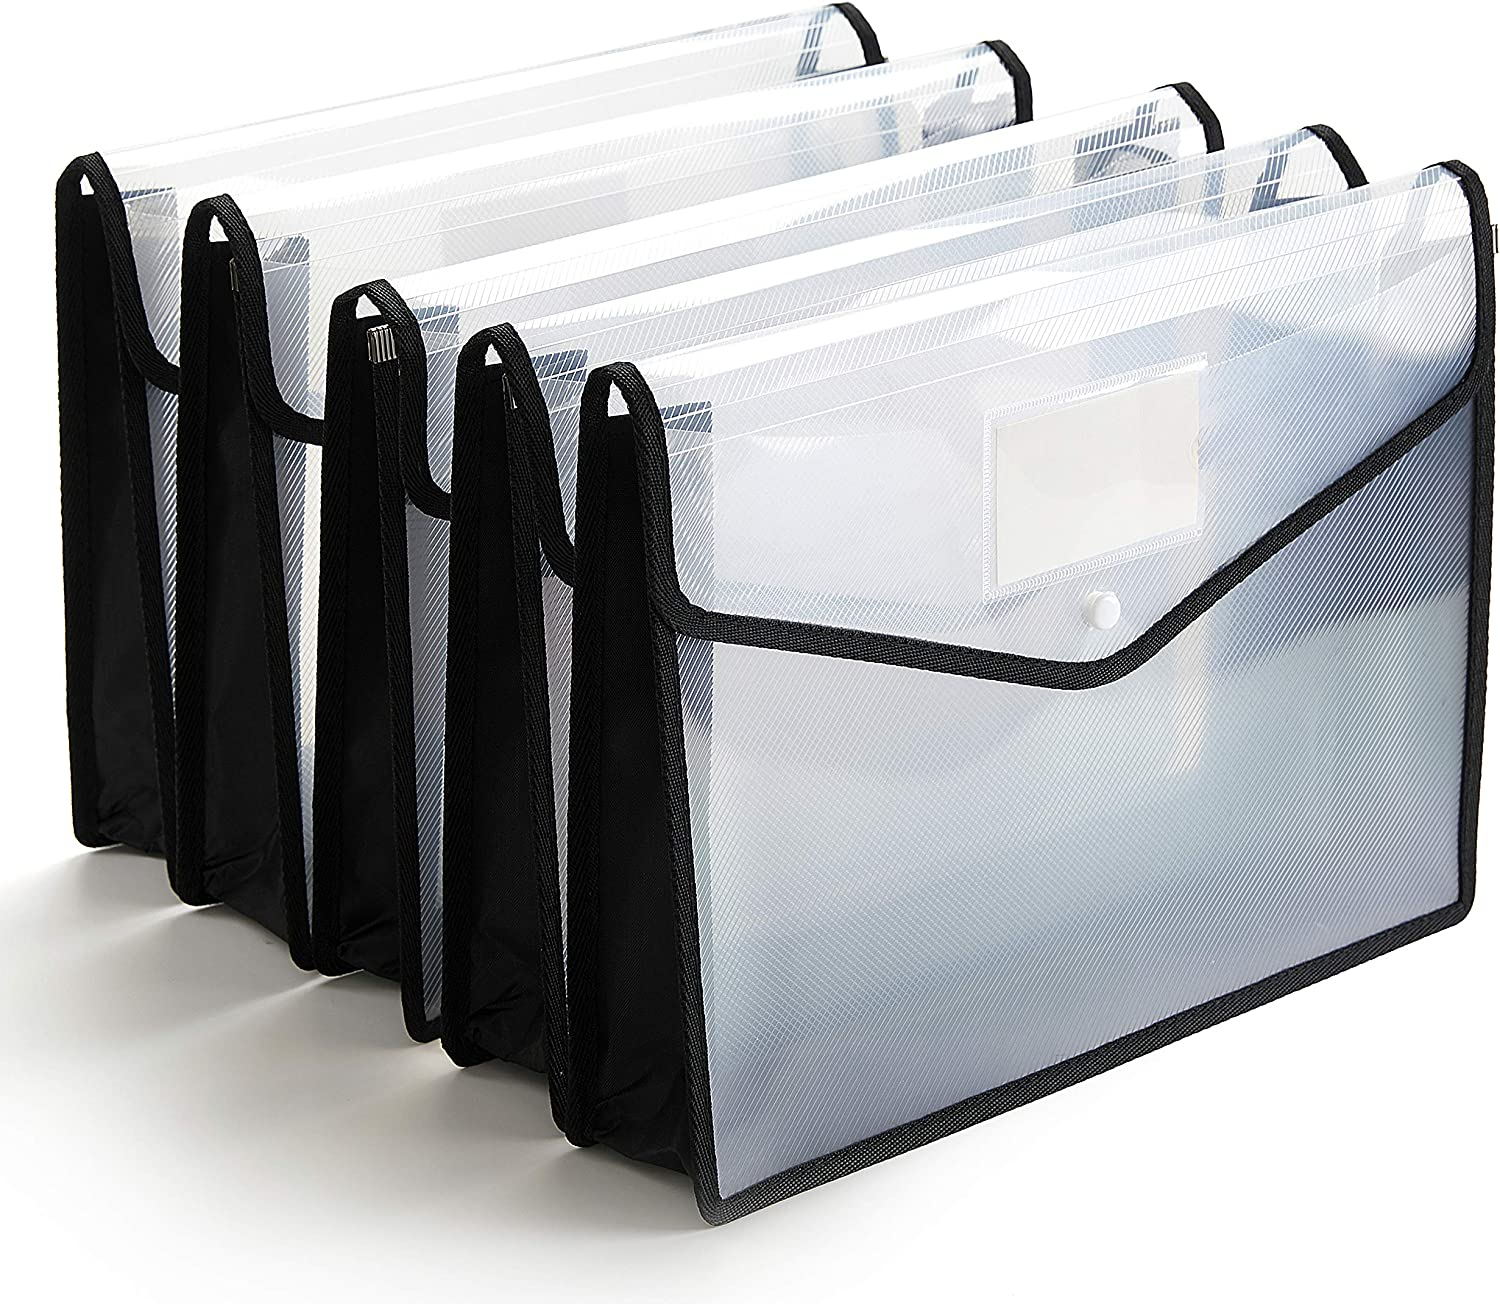 FANWU Plastic File Folder Poly Envelope Expanding File Wallet Document Folder with Snap Button Closure, Legal Size, 5 Pack Large Waterproof Accordion File Pouch (Transparent&Black)